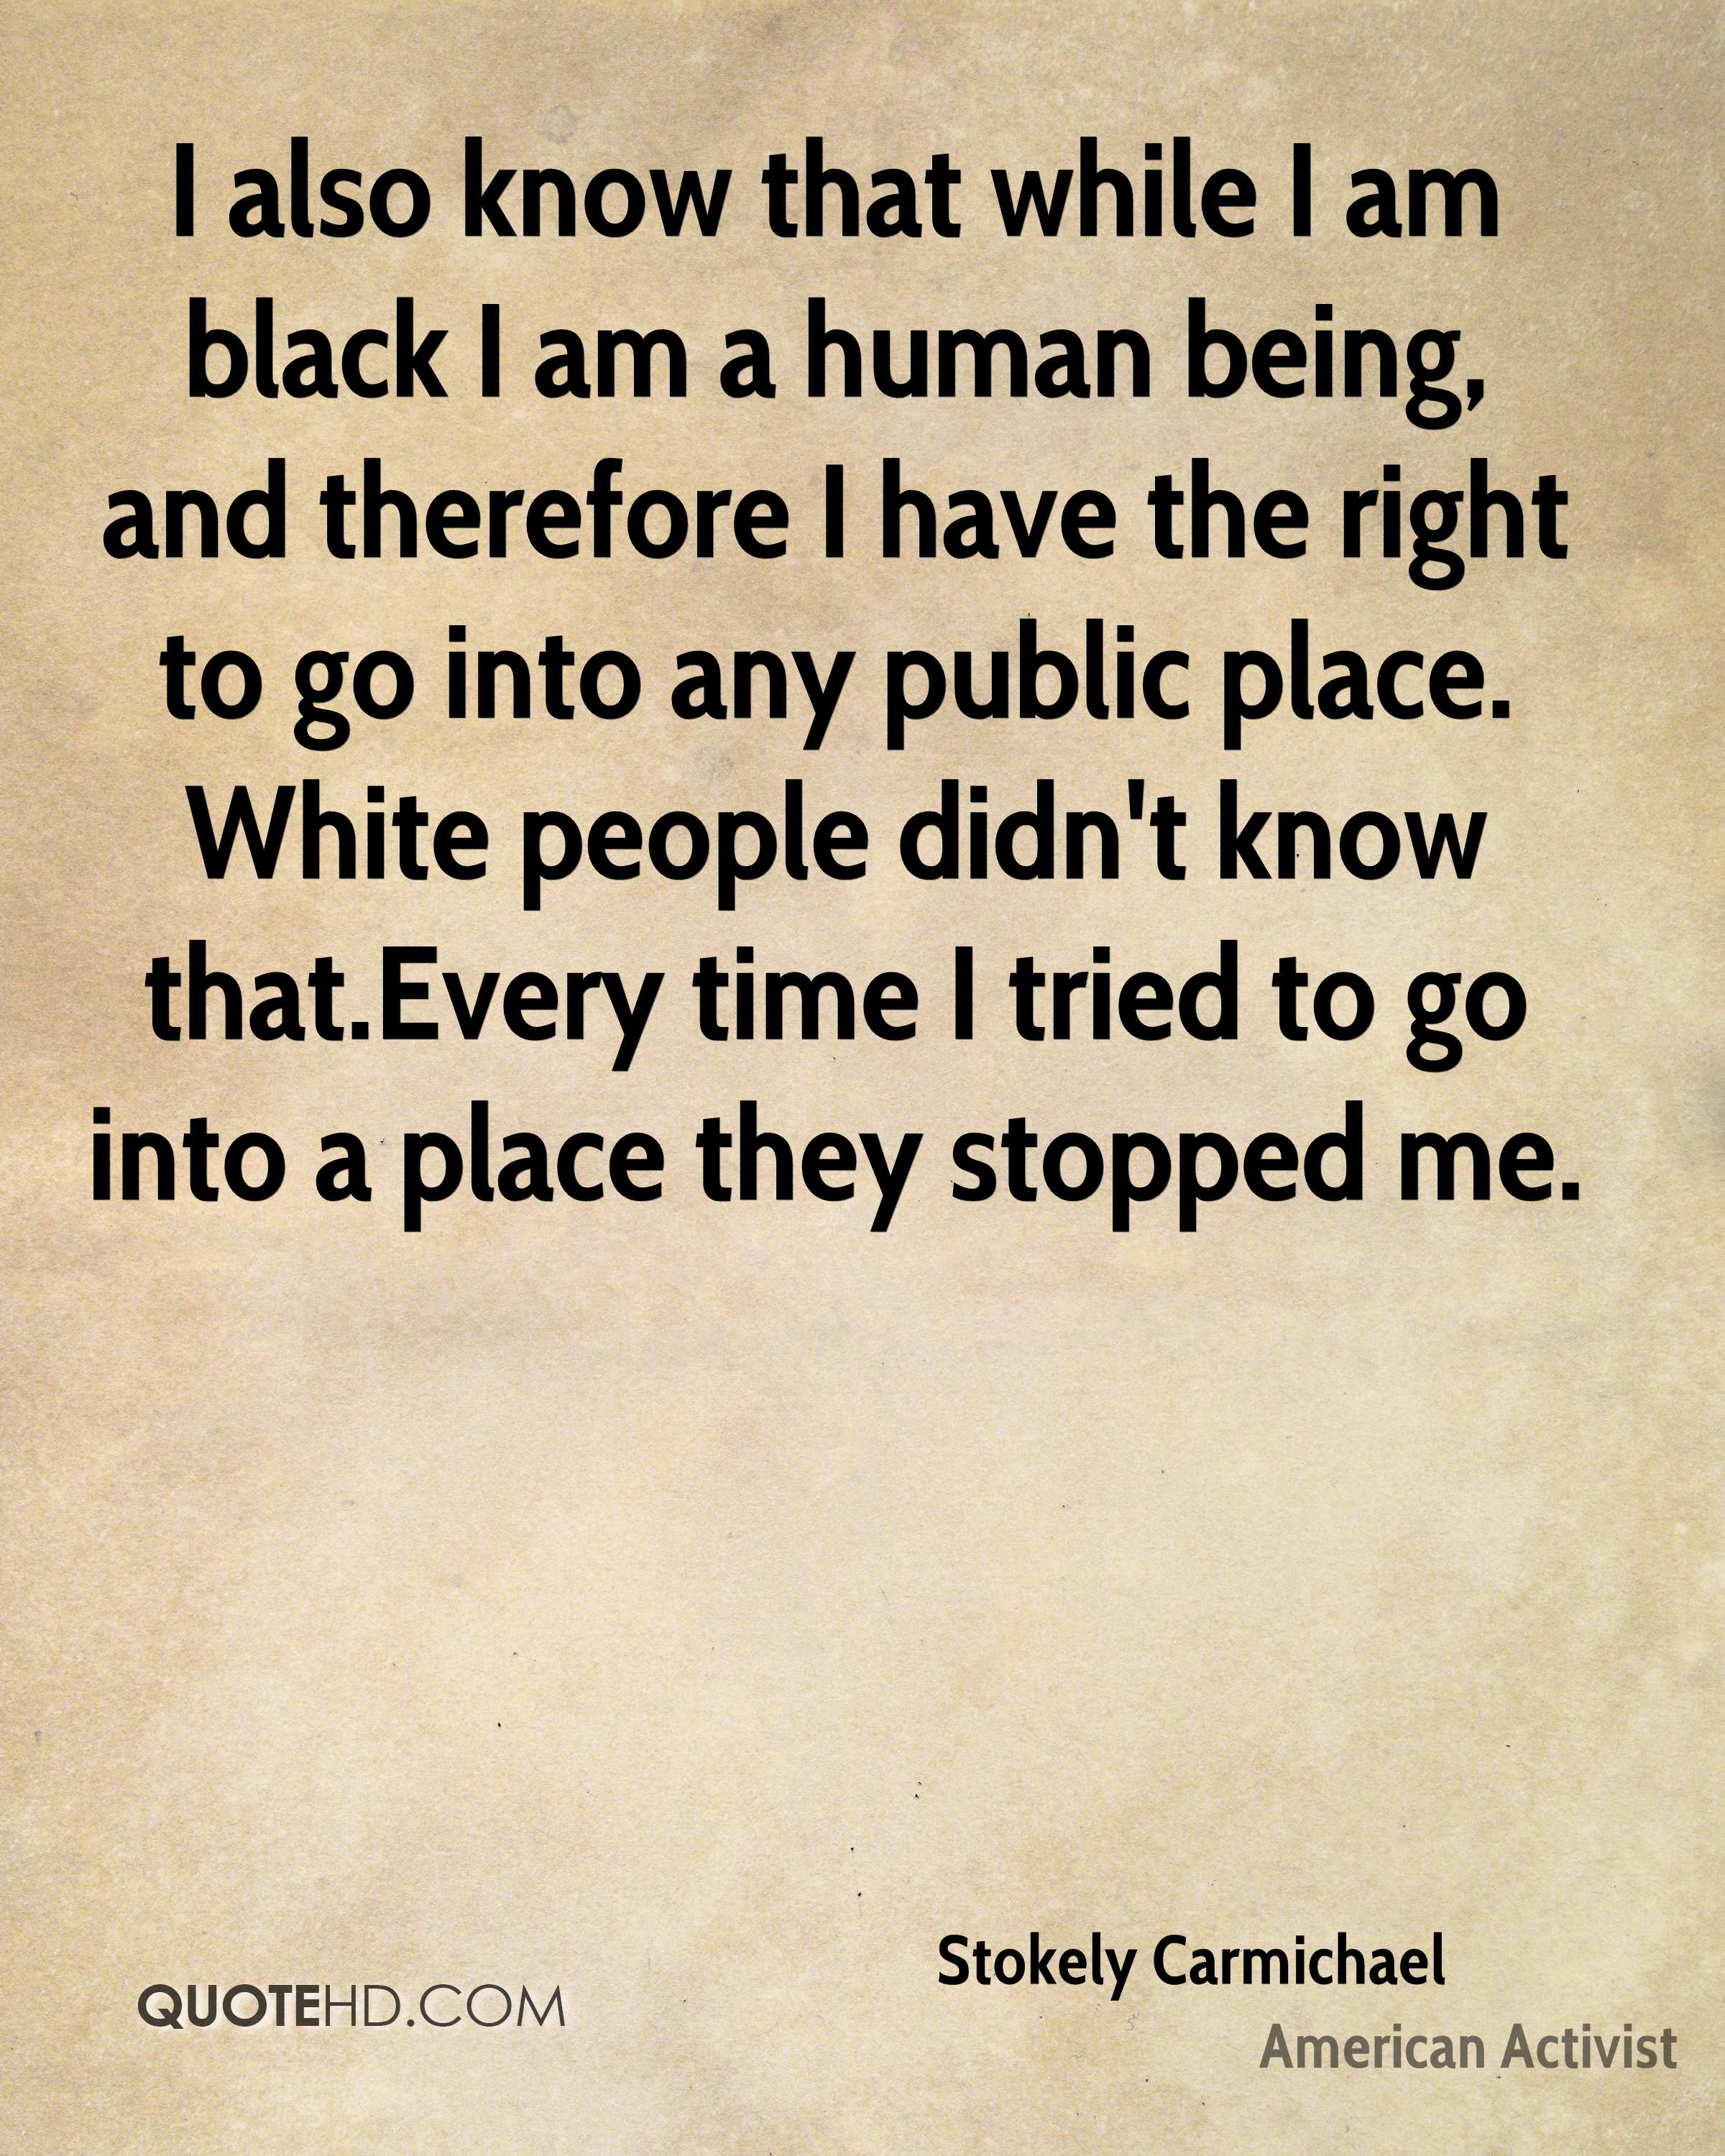 I also know that while I am black I am a human being, and therefore I have the right to go into any public place. White people didn't know that.Every time I tried to go into a place they stopped me.